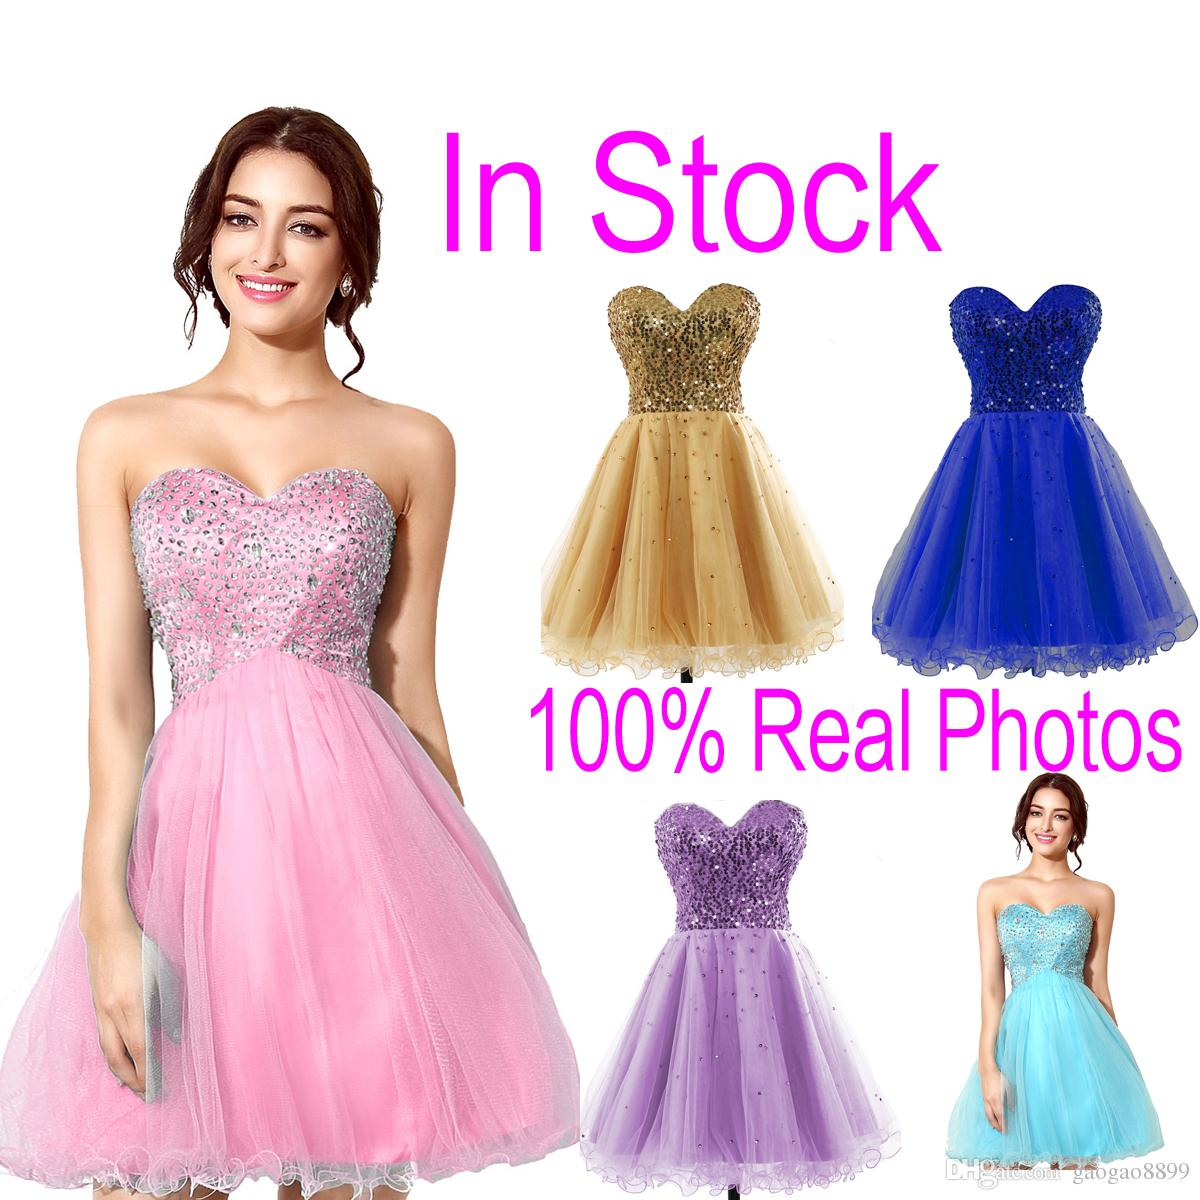 0faca7f8dcd In Stock Pink Tulle Mini Crystal Homecoming Dresses Beads Lilac Sky Royal  Blue Short Prom Party Graduation Gowns 2015 Cheap Real Image Hot Purple  Dresses ...